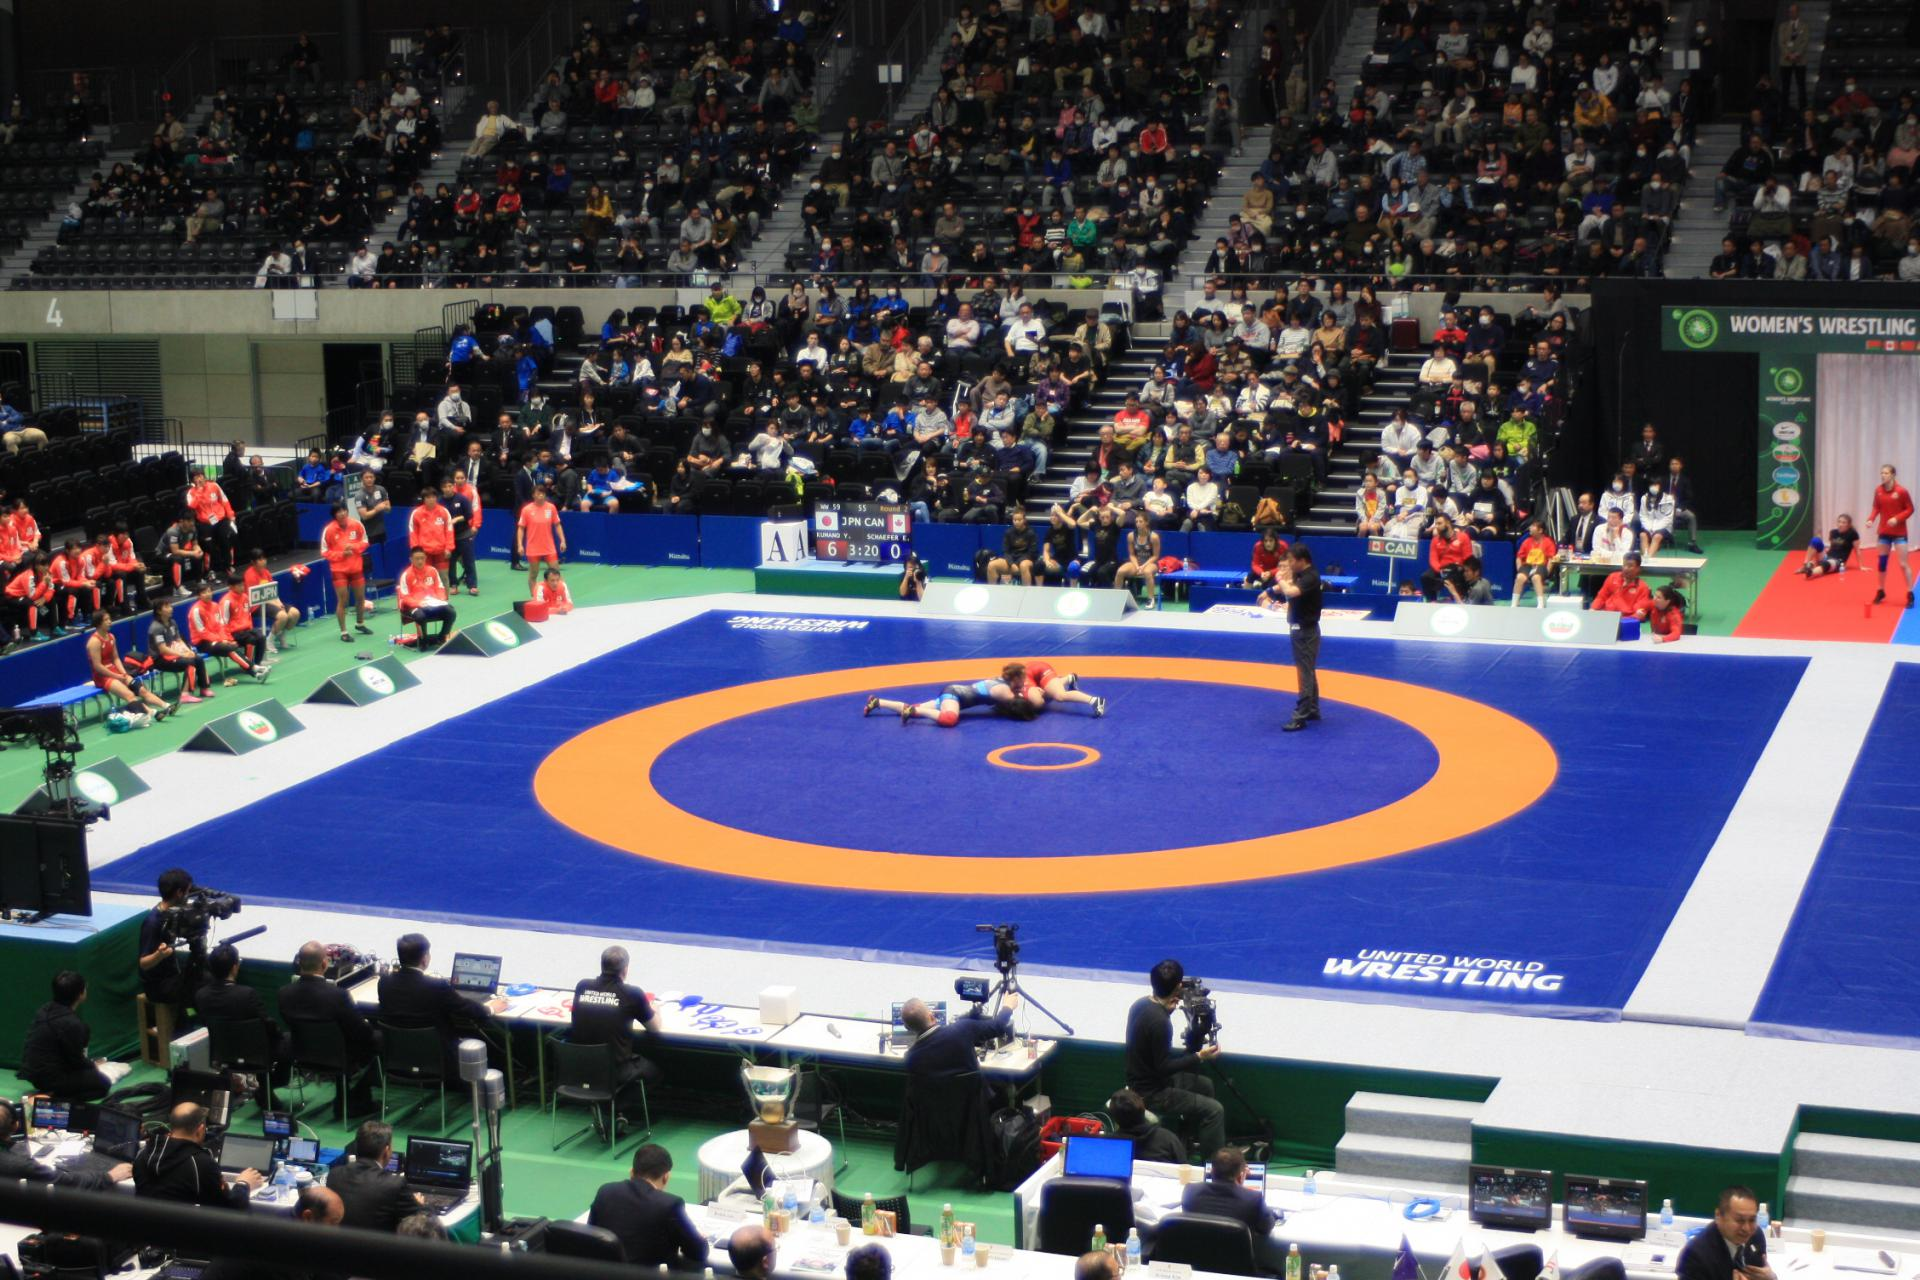 United World Wrestling Women&rsquo;s World Cup<br />17 March 2018 - 18 March 2018